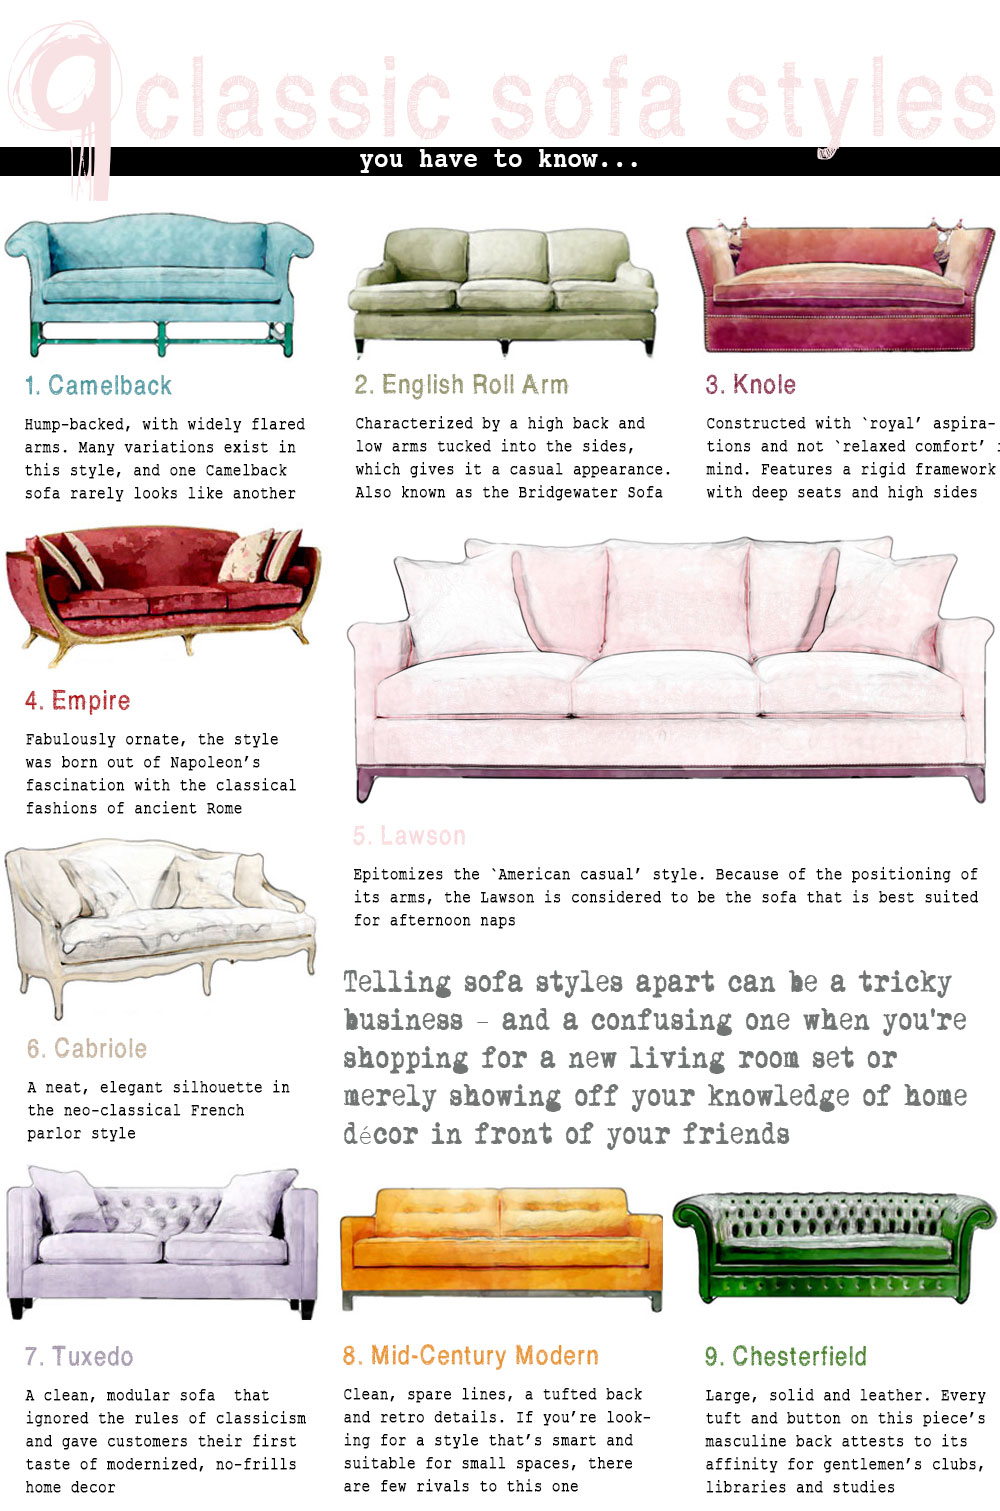 Design Types Of Couches different types of couches convertible sofas u vurni with simple the ultimate sofa styles guide bodmin magazine couches